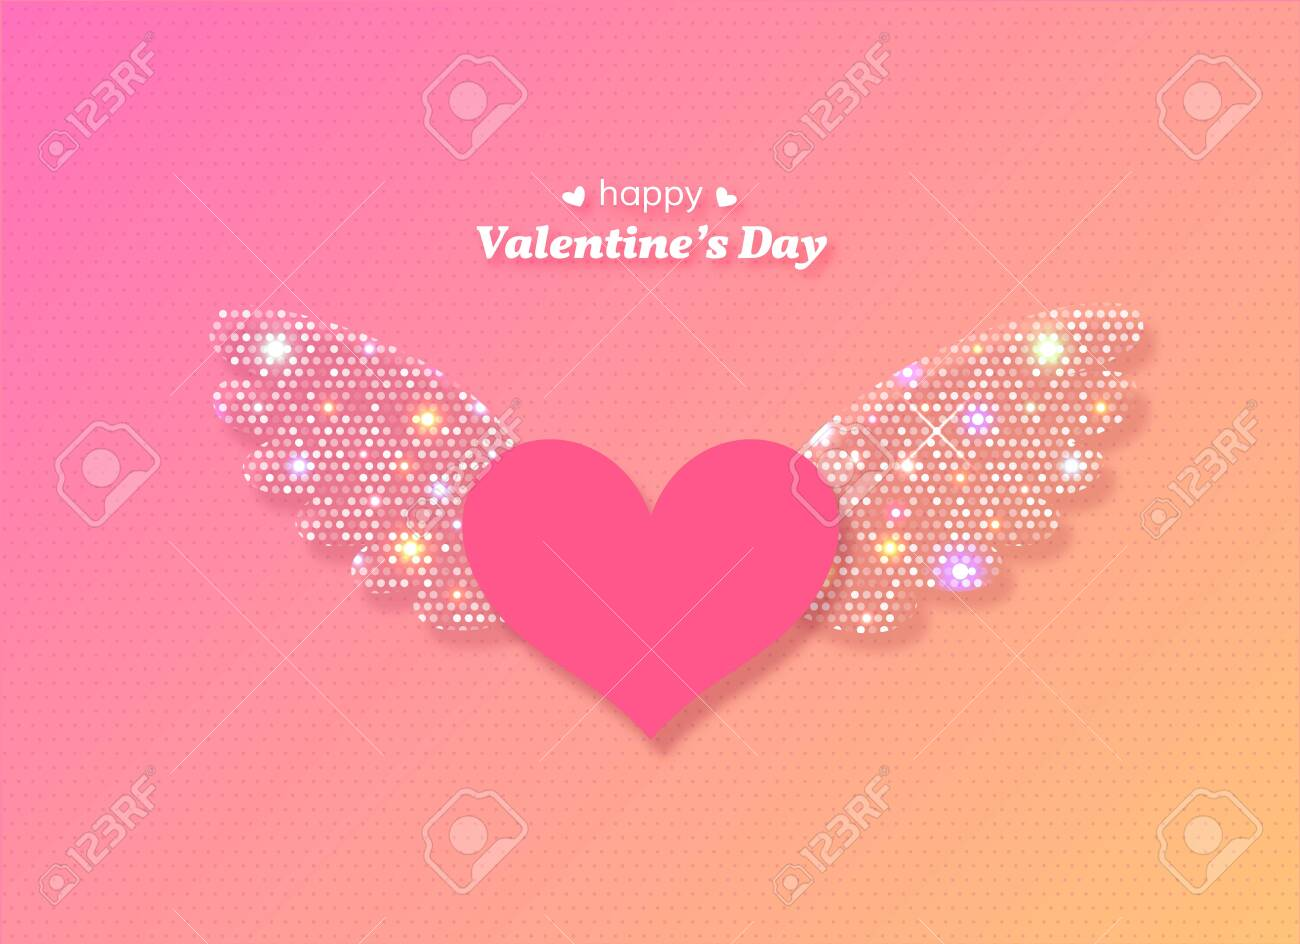 Valentines Day heart with glowing wings. Vector illustration. - 124388318